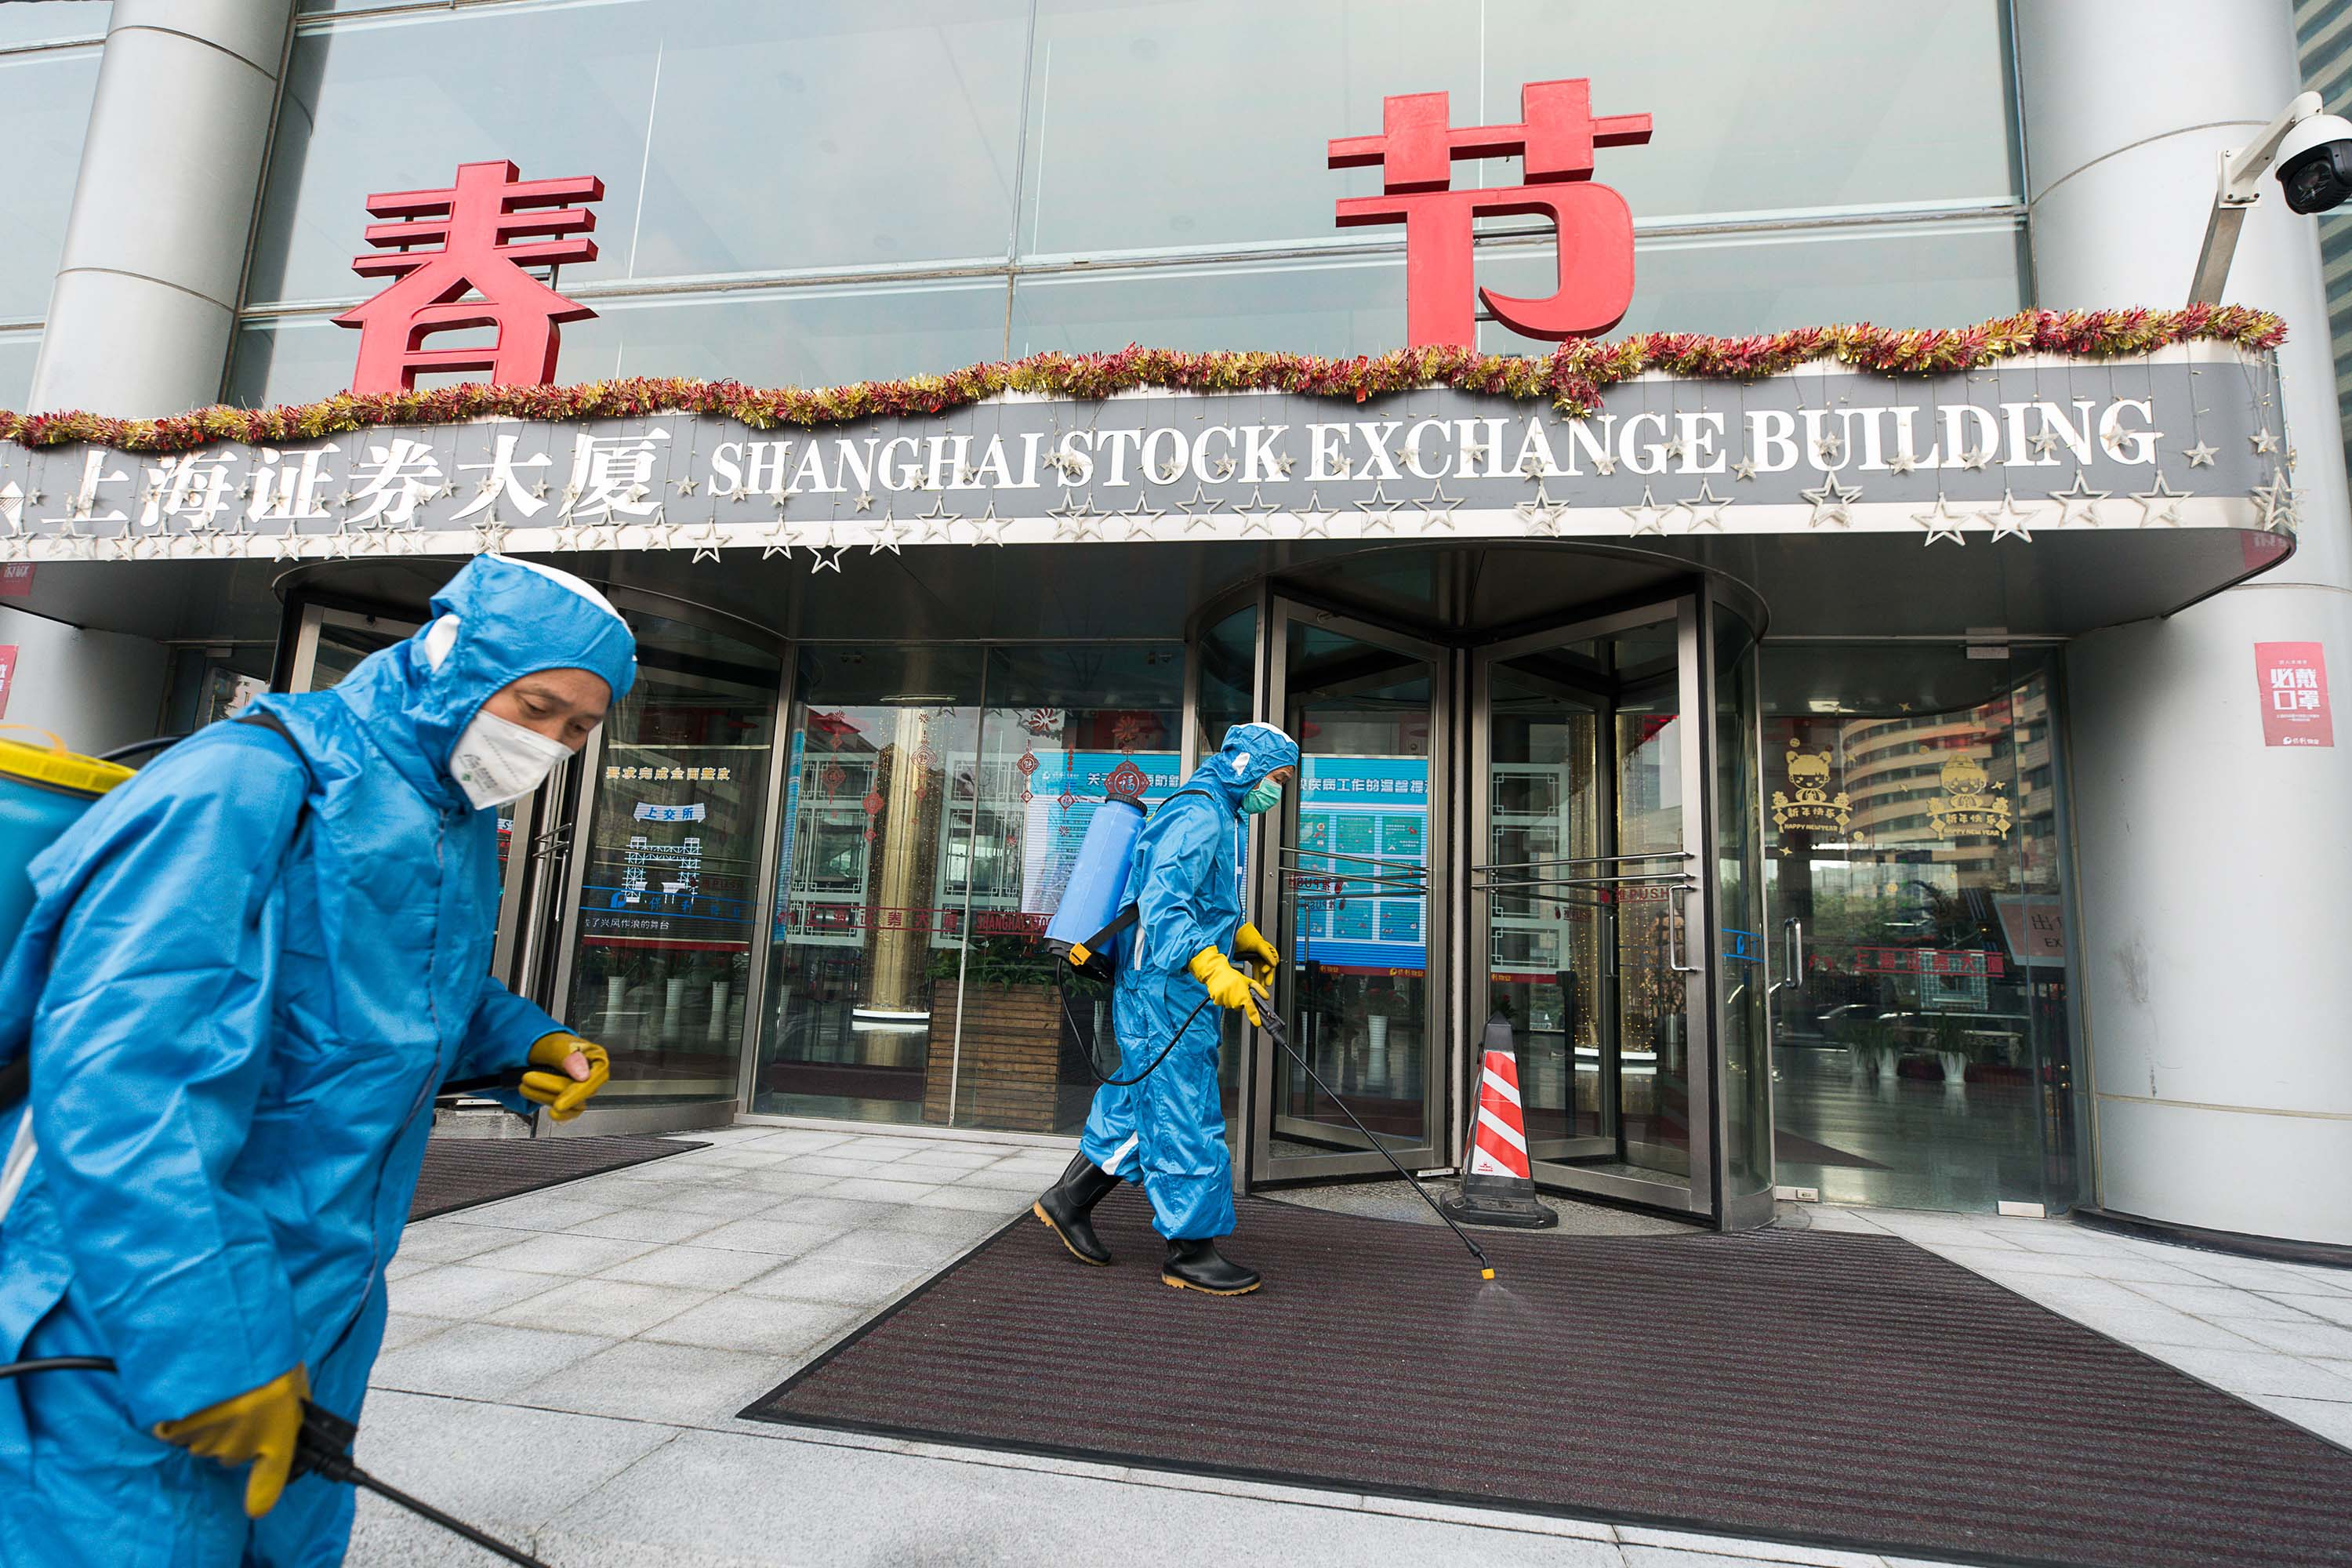 Medical workers spray antiseptic outside the Shanghai Stock Exchange Building on Monday.